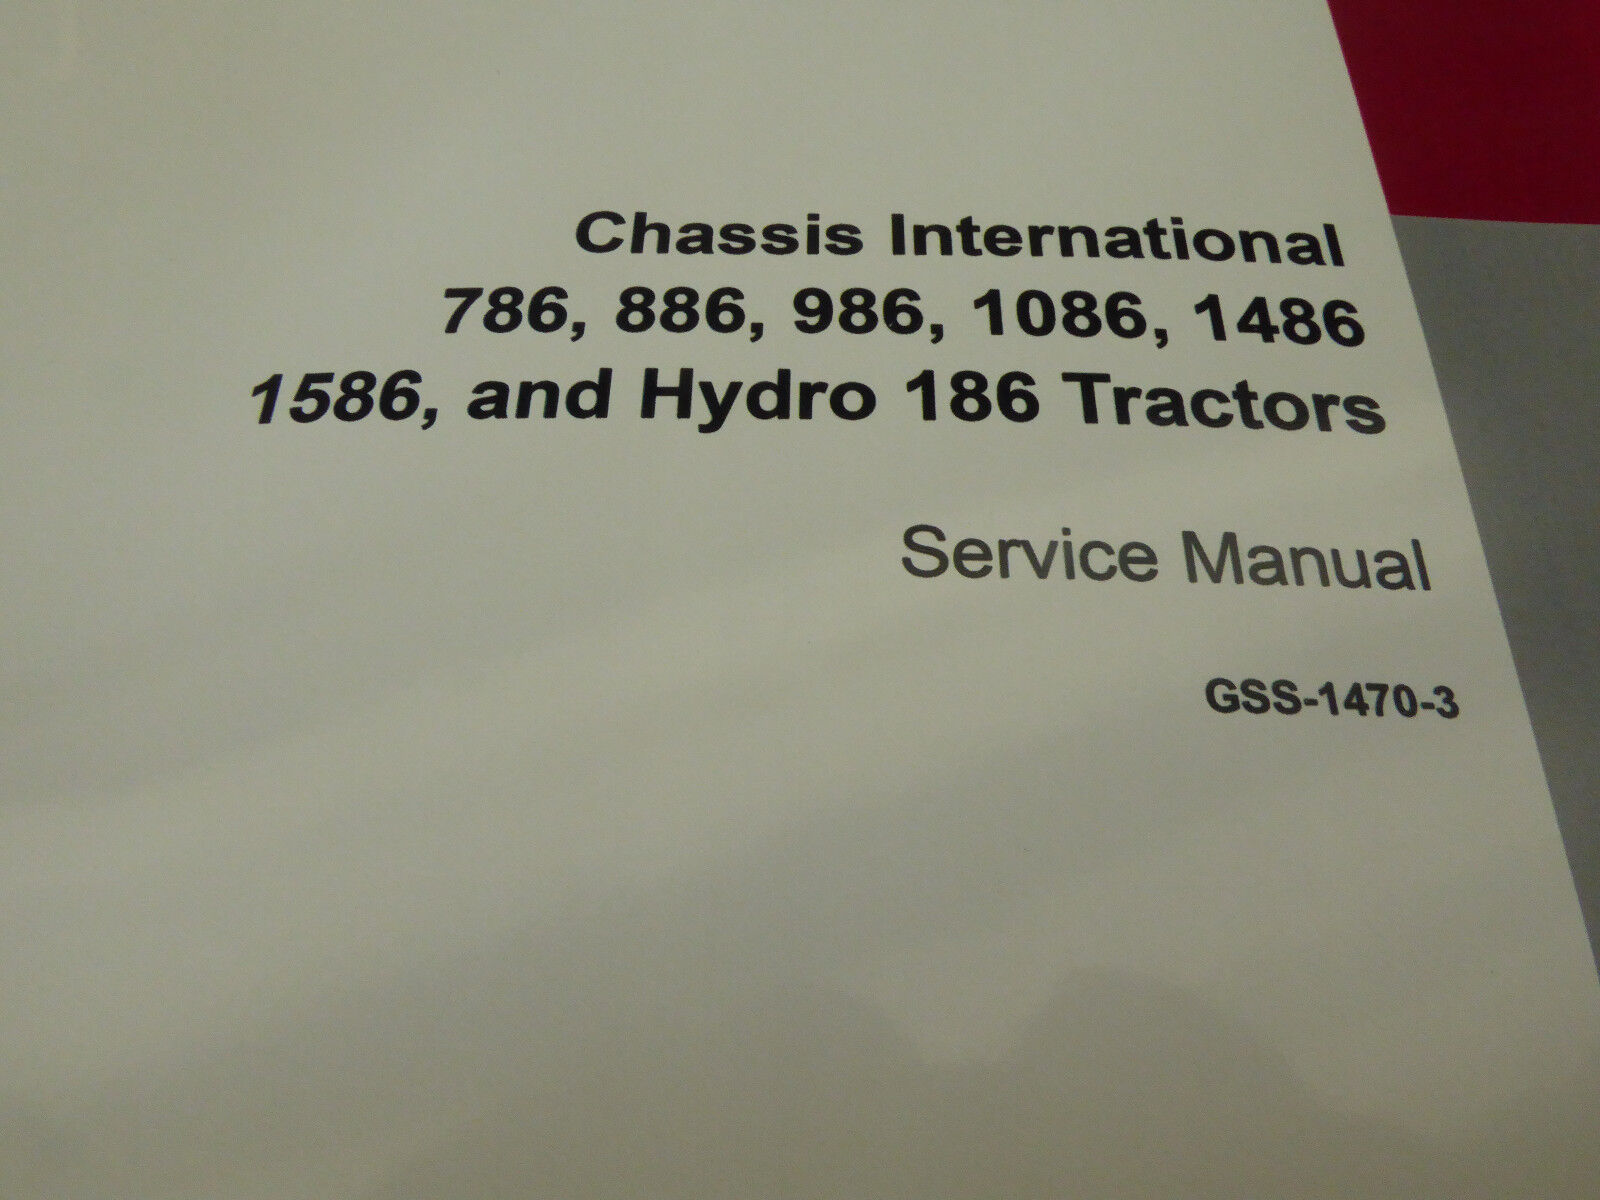 Case Ih 1586 Wiring Schematic Ford 4600 Diesel Tractor Diagram 786 International Data Schema On